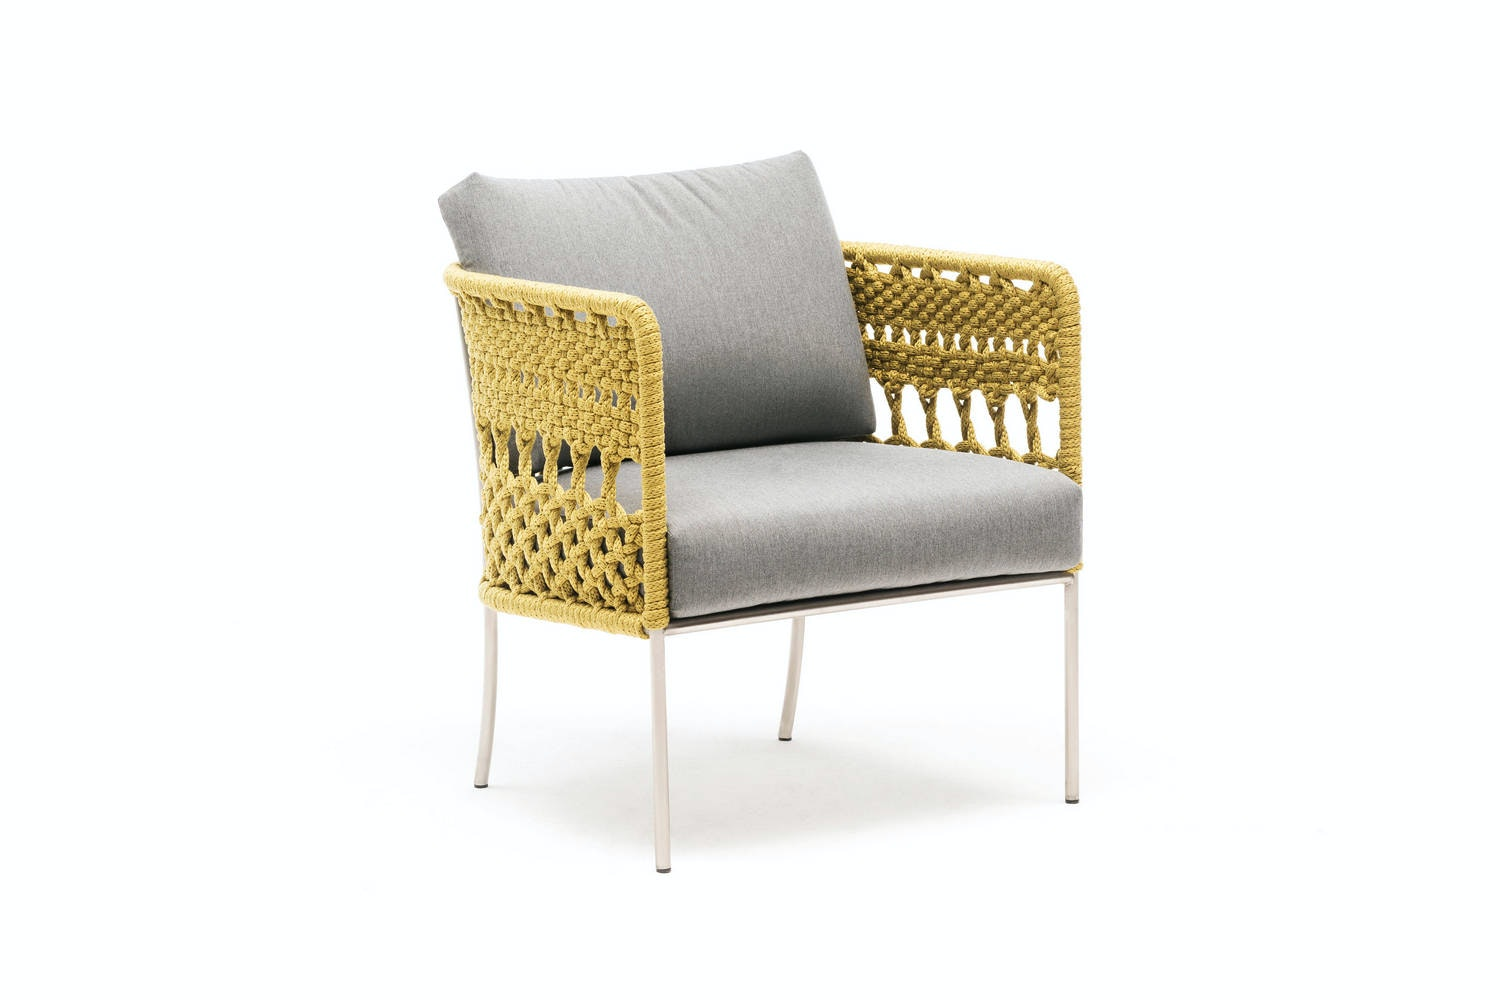 Tombolo Armchair by UN pizzo for Living Divani